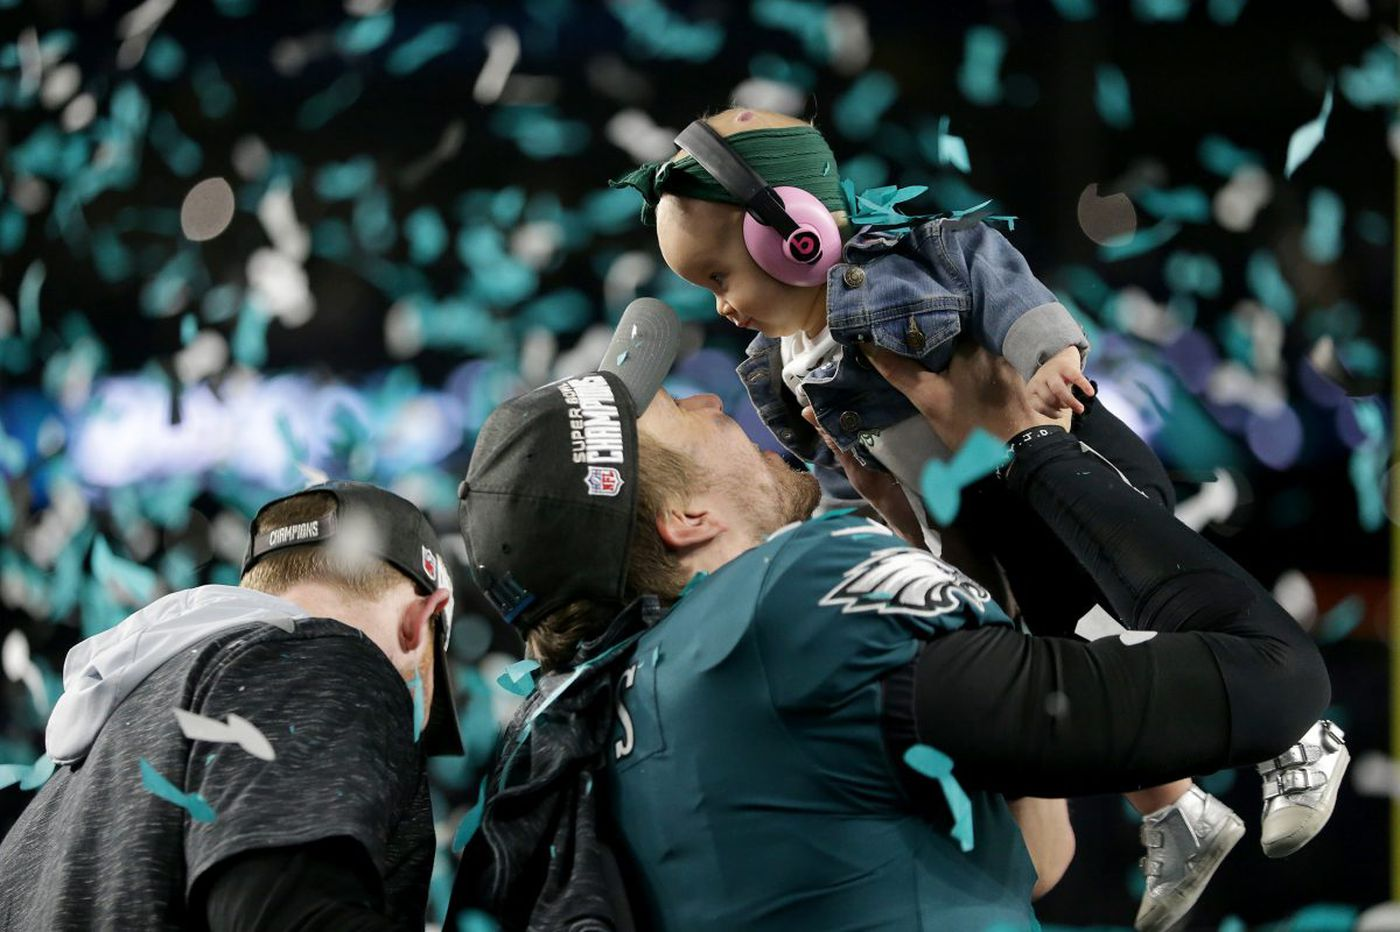 Nick Foles nails it: Eagles Super Bowl win is a family affair for us all | Maria Panaritis